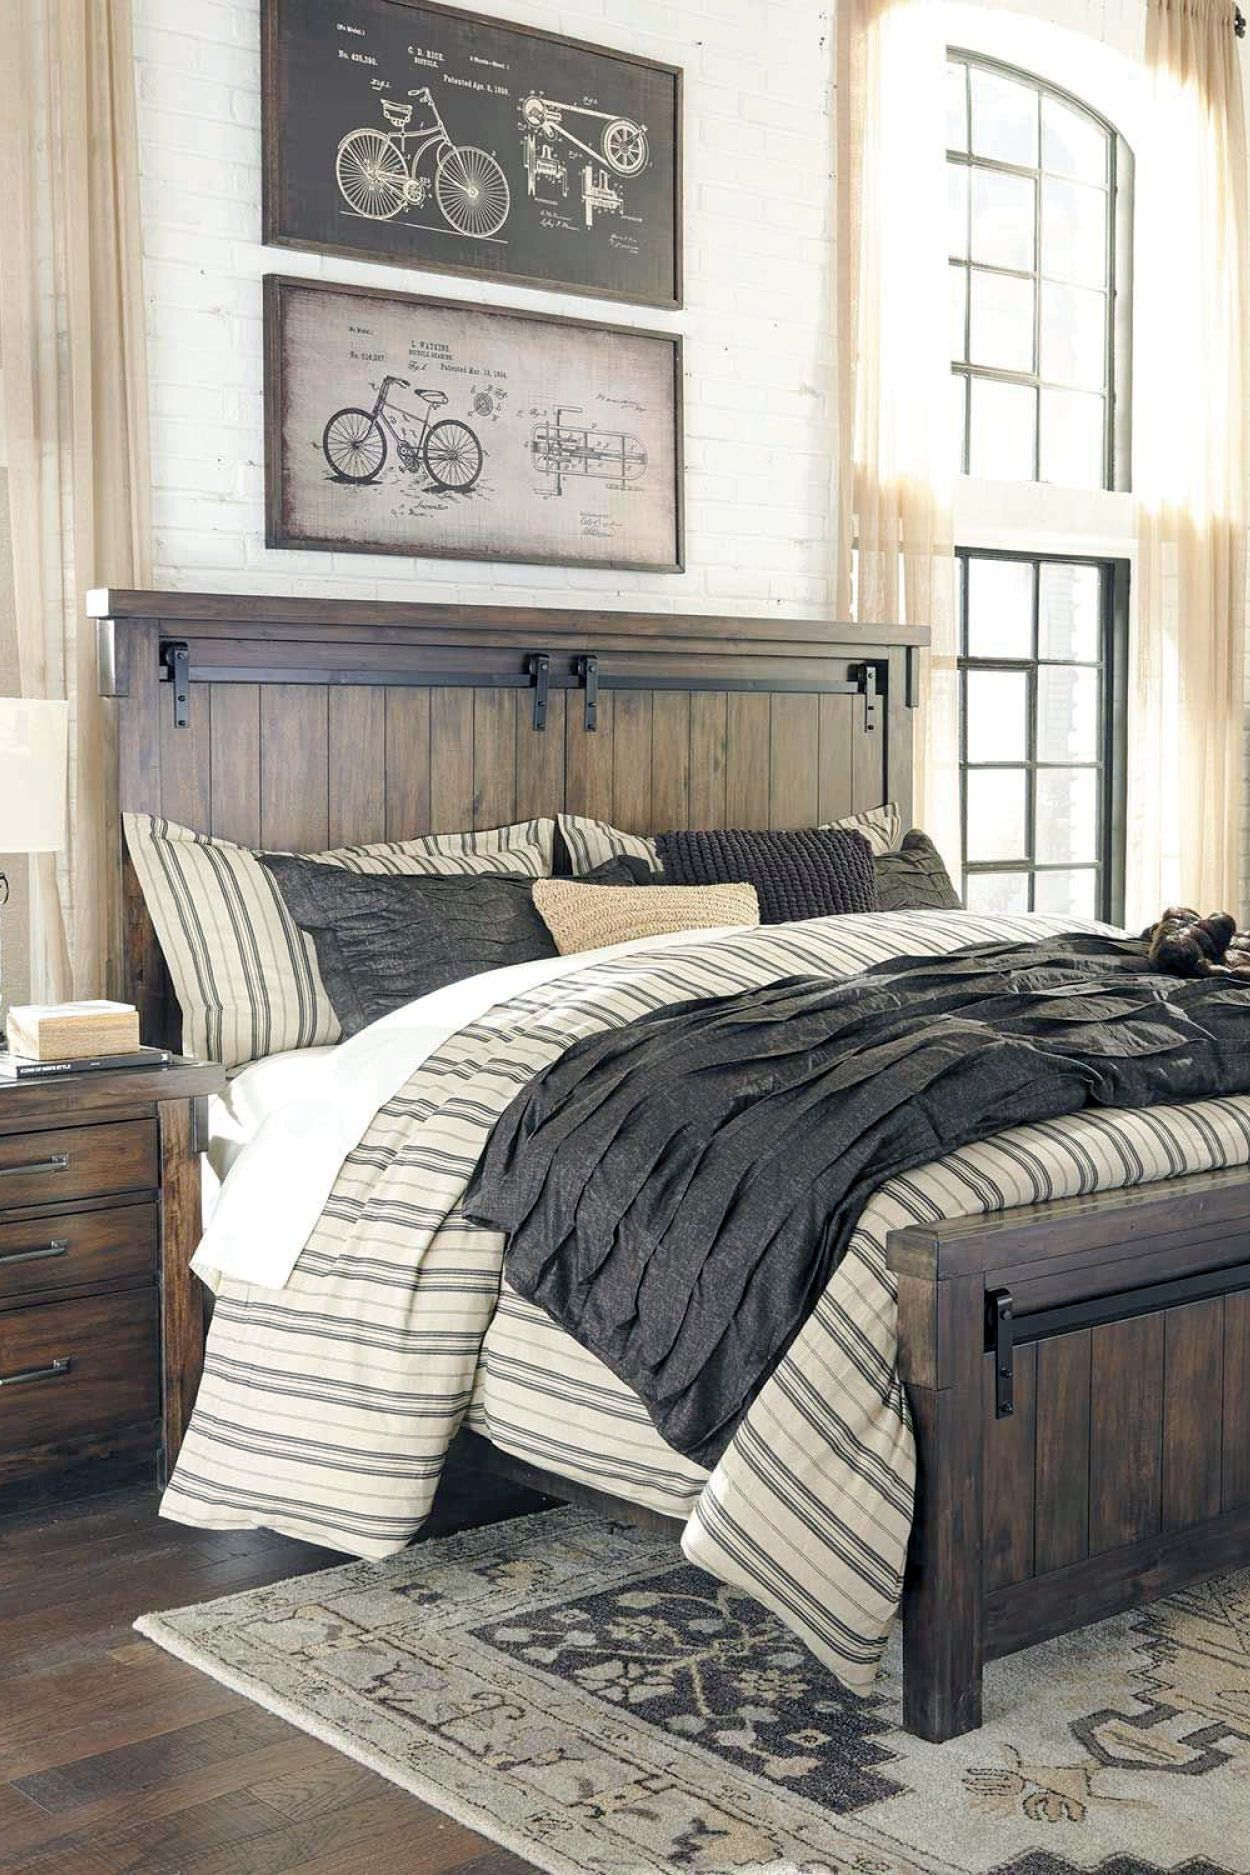 Discover Urban Rustic Bedroom Furniture Only In Homesaholic Design